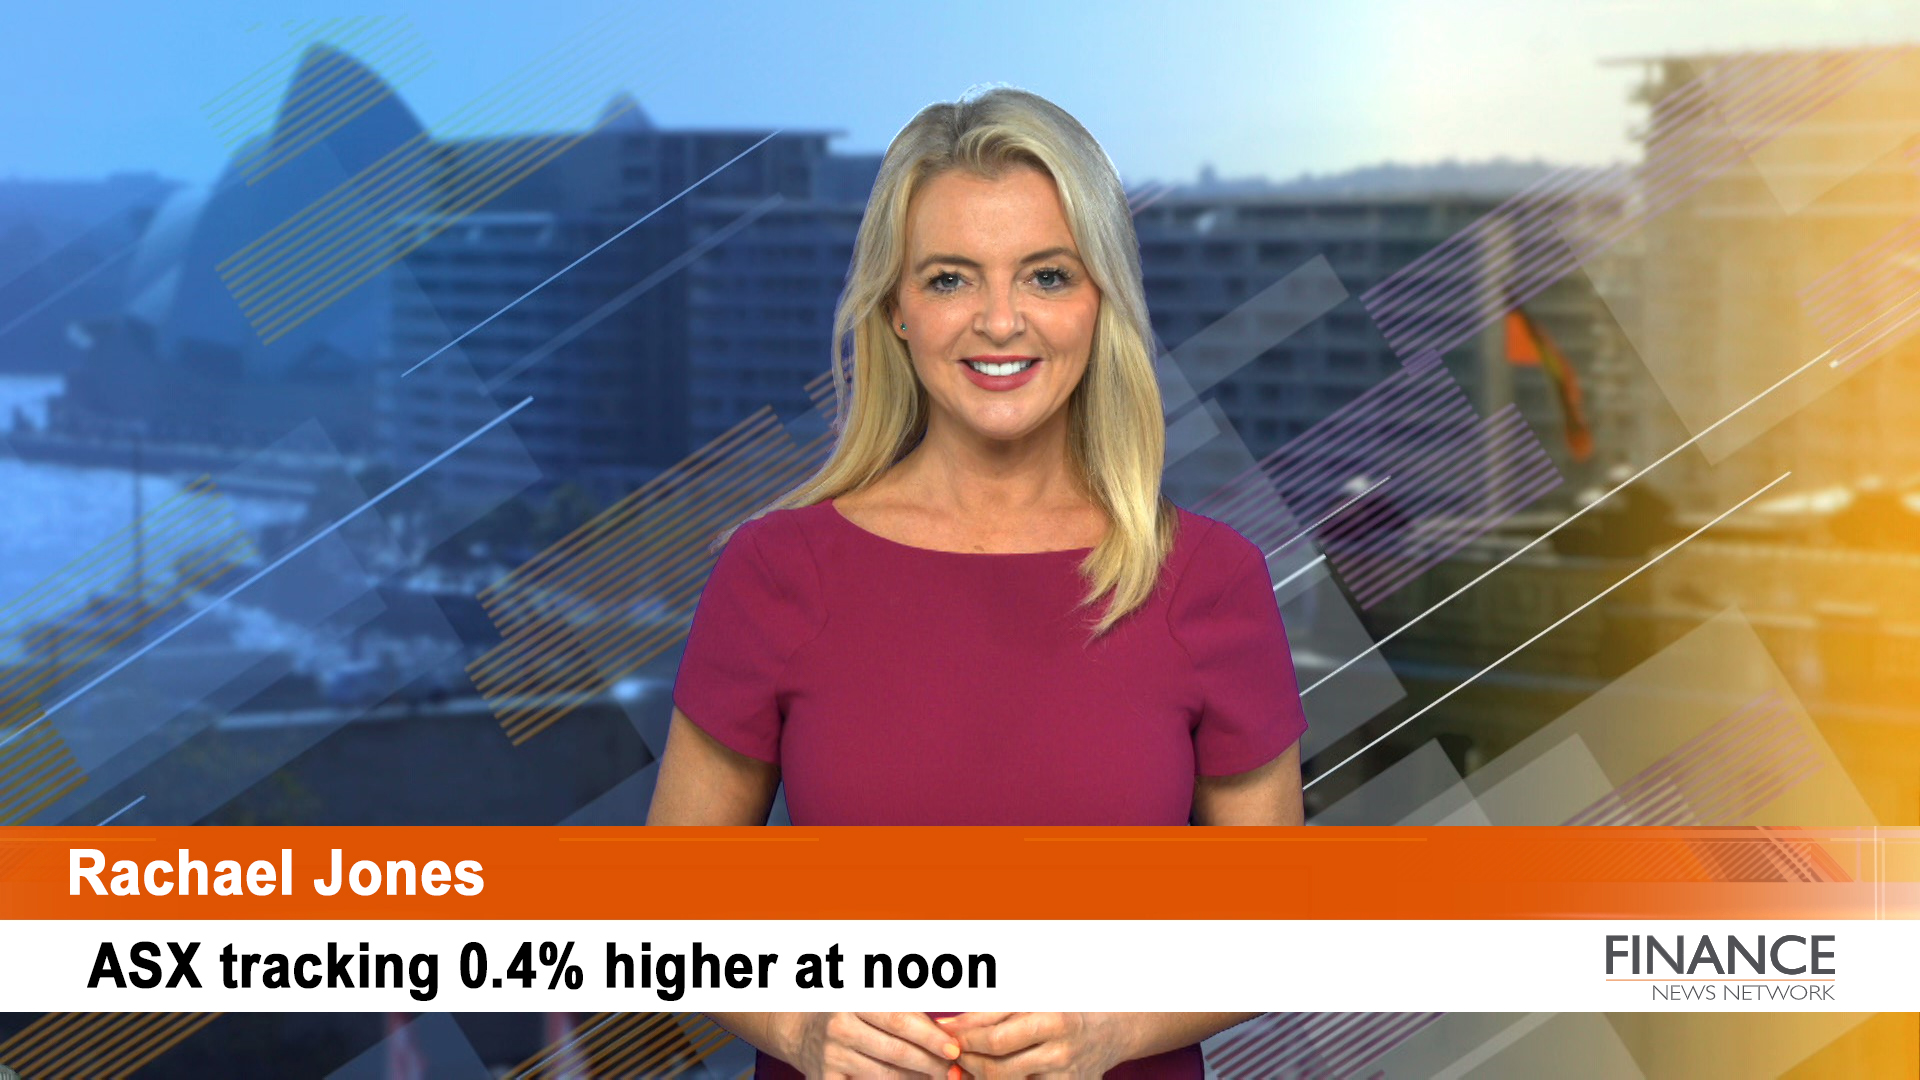 UK exit polls suggest a Boris Johnson win: ASX tracking 0.4% higher at noon